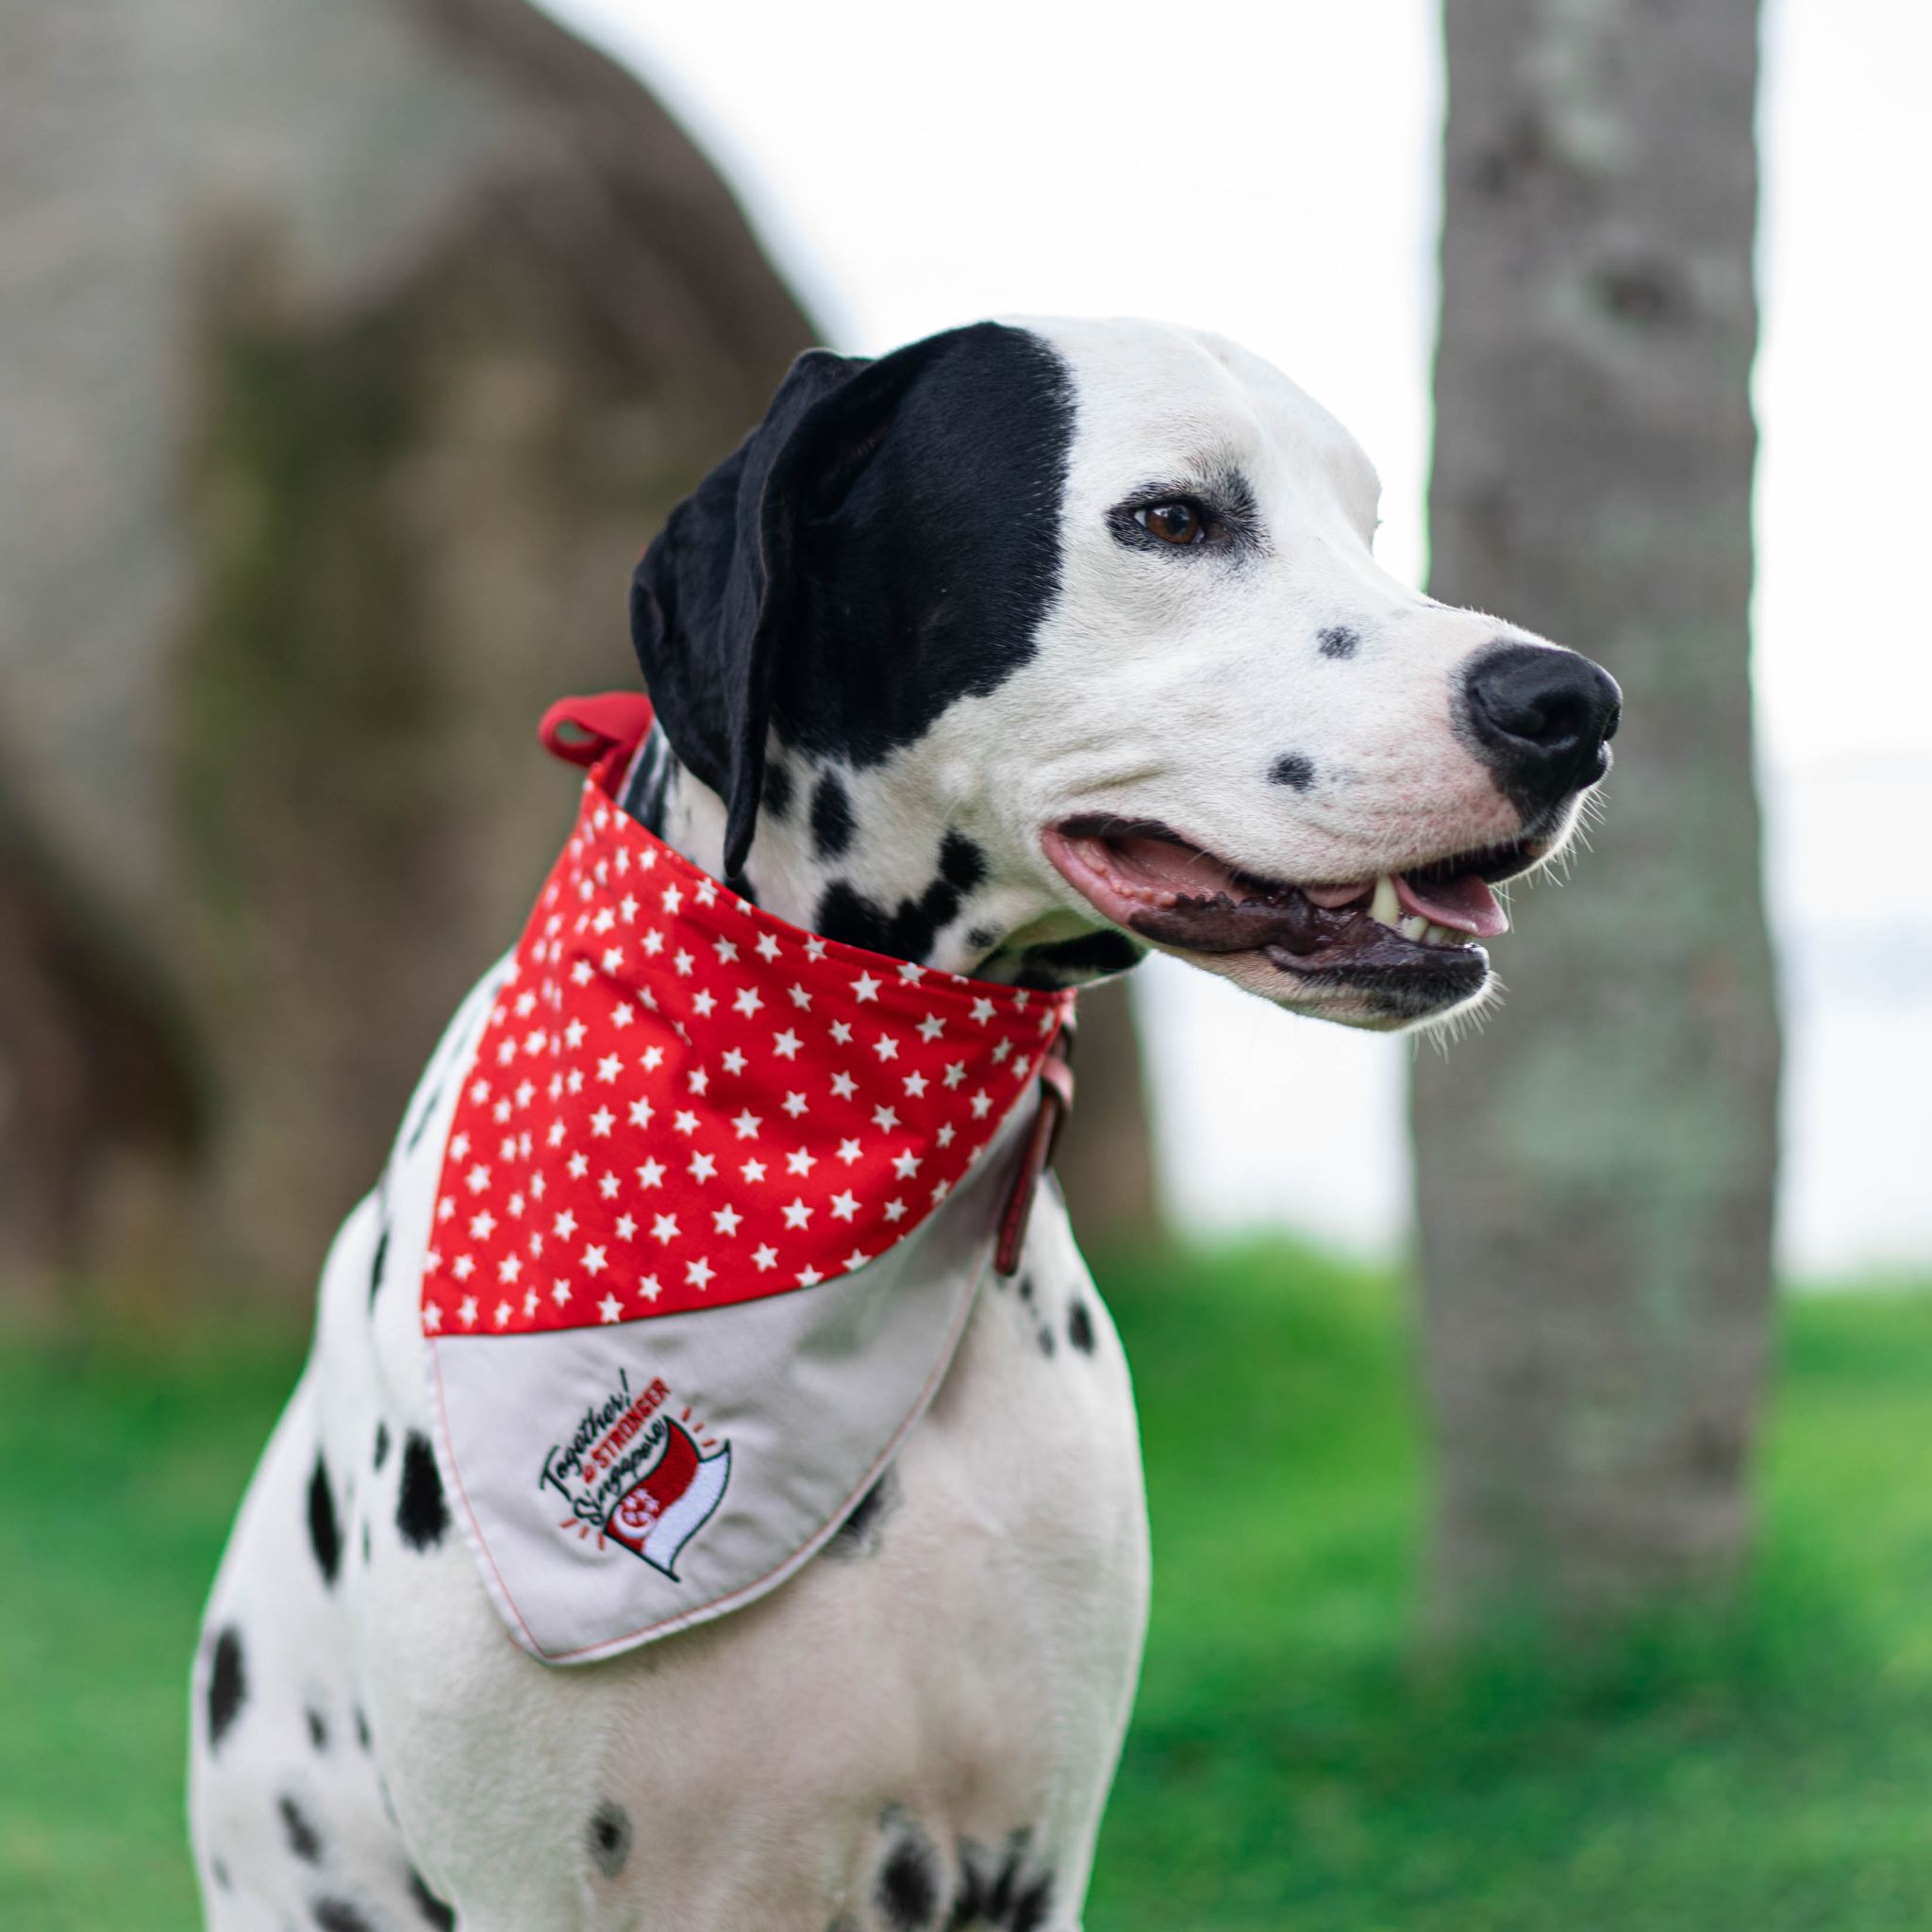 ND 2020 <Together A Stronger Singapore> Pet Bandana in Patriotic Grey - The Pet's Couture